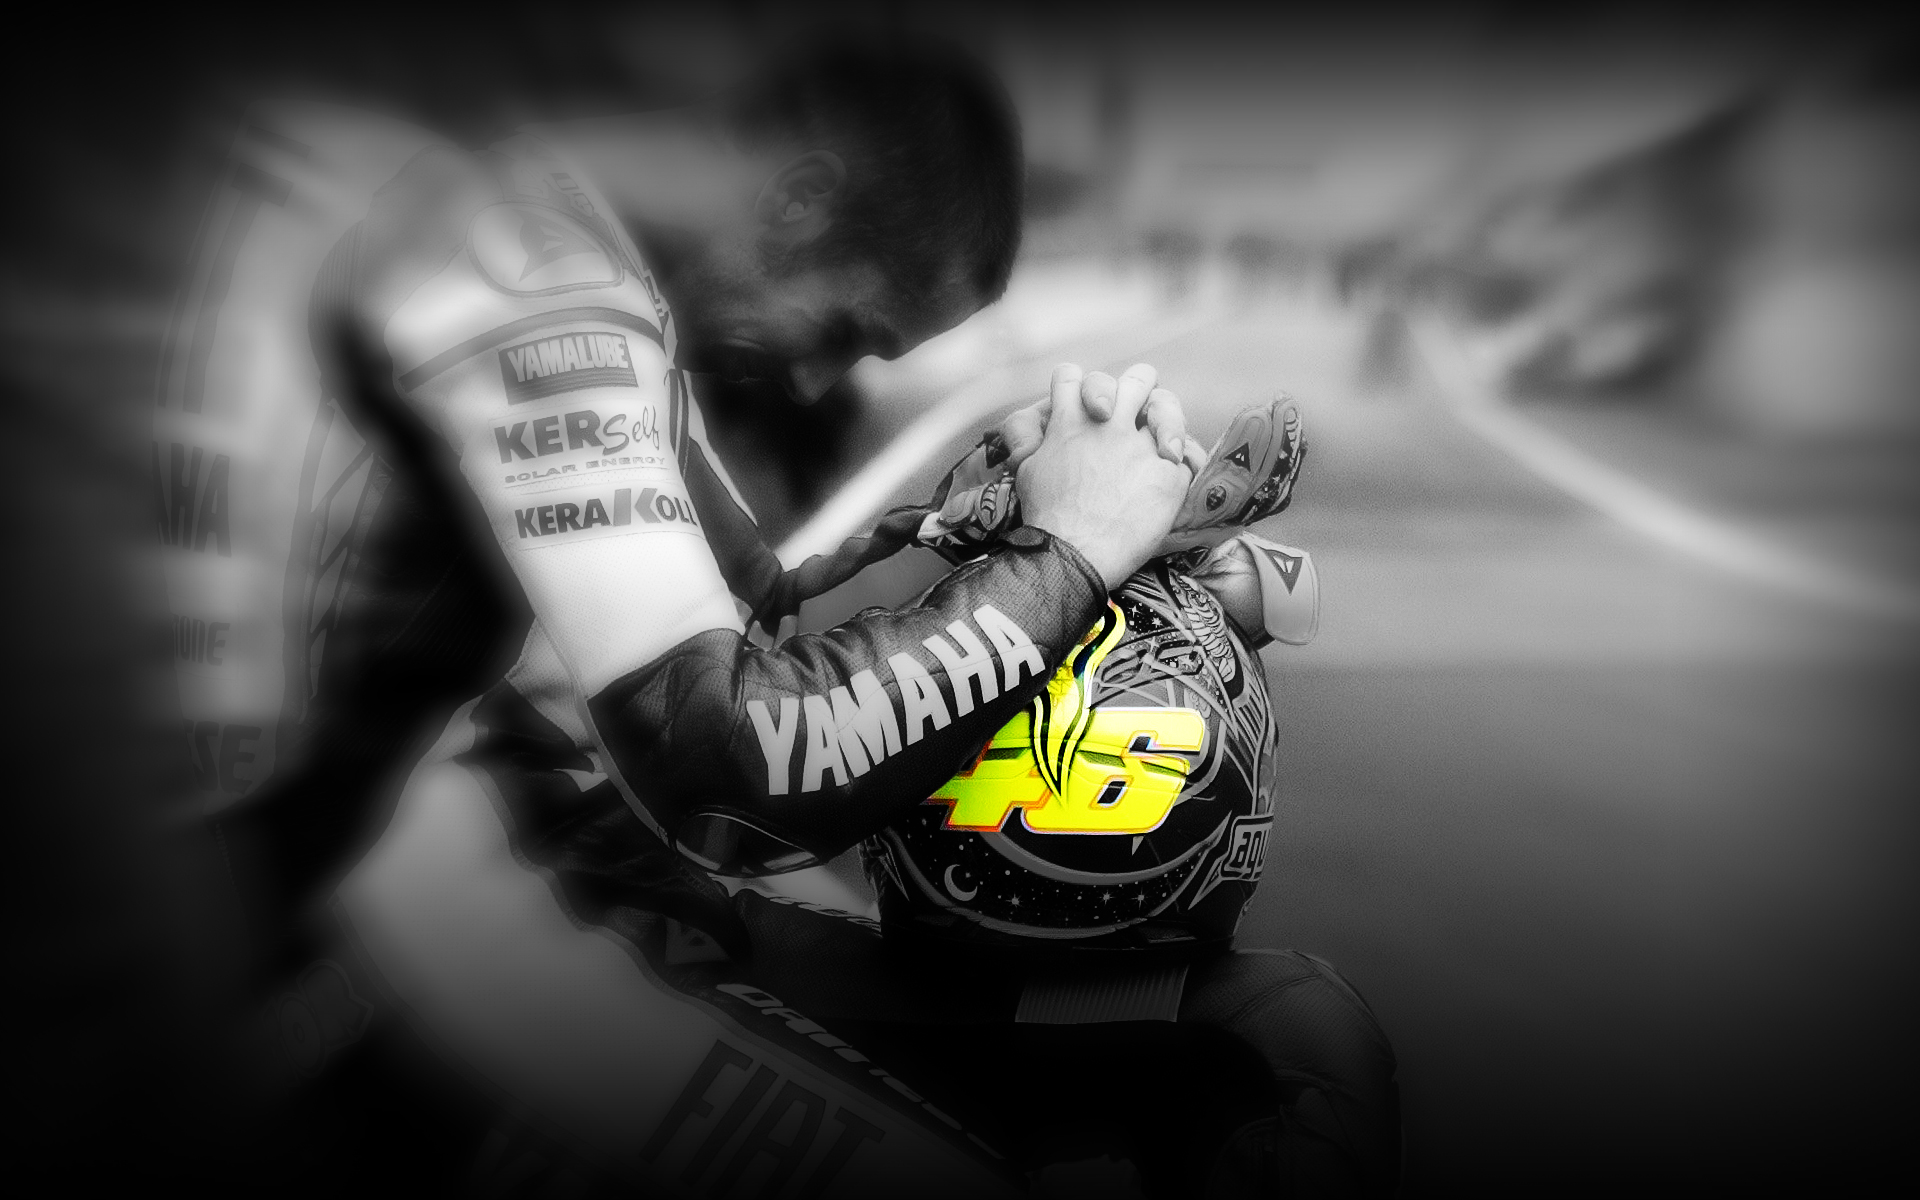 1920x1200 - Valentino Rossi Wallpapers 10